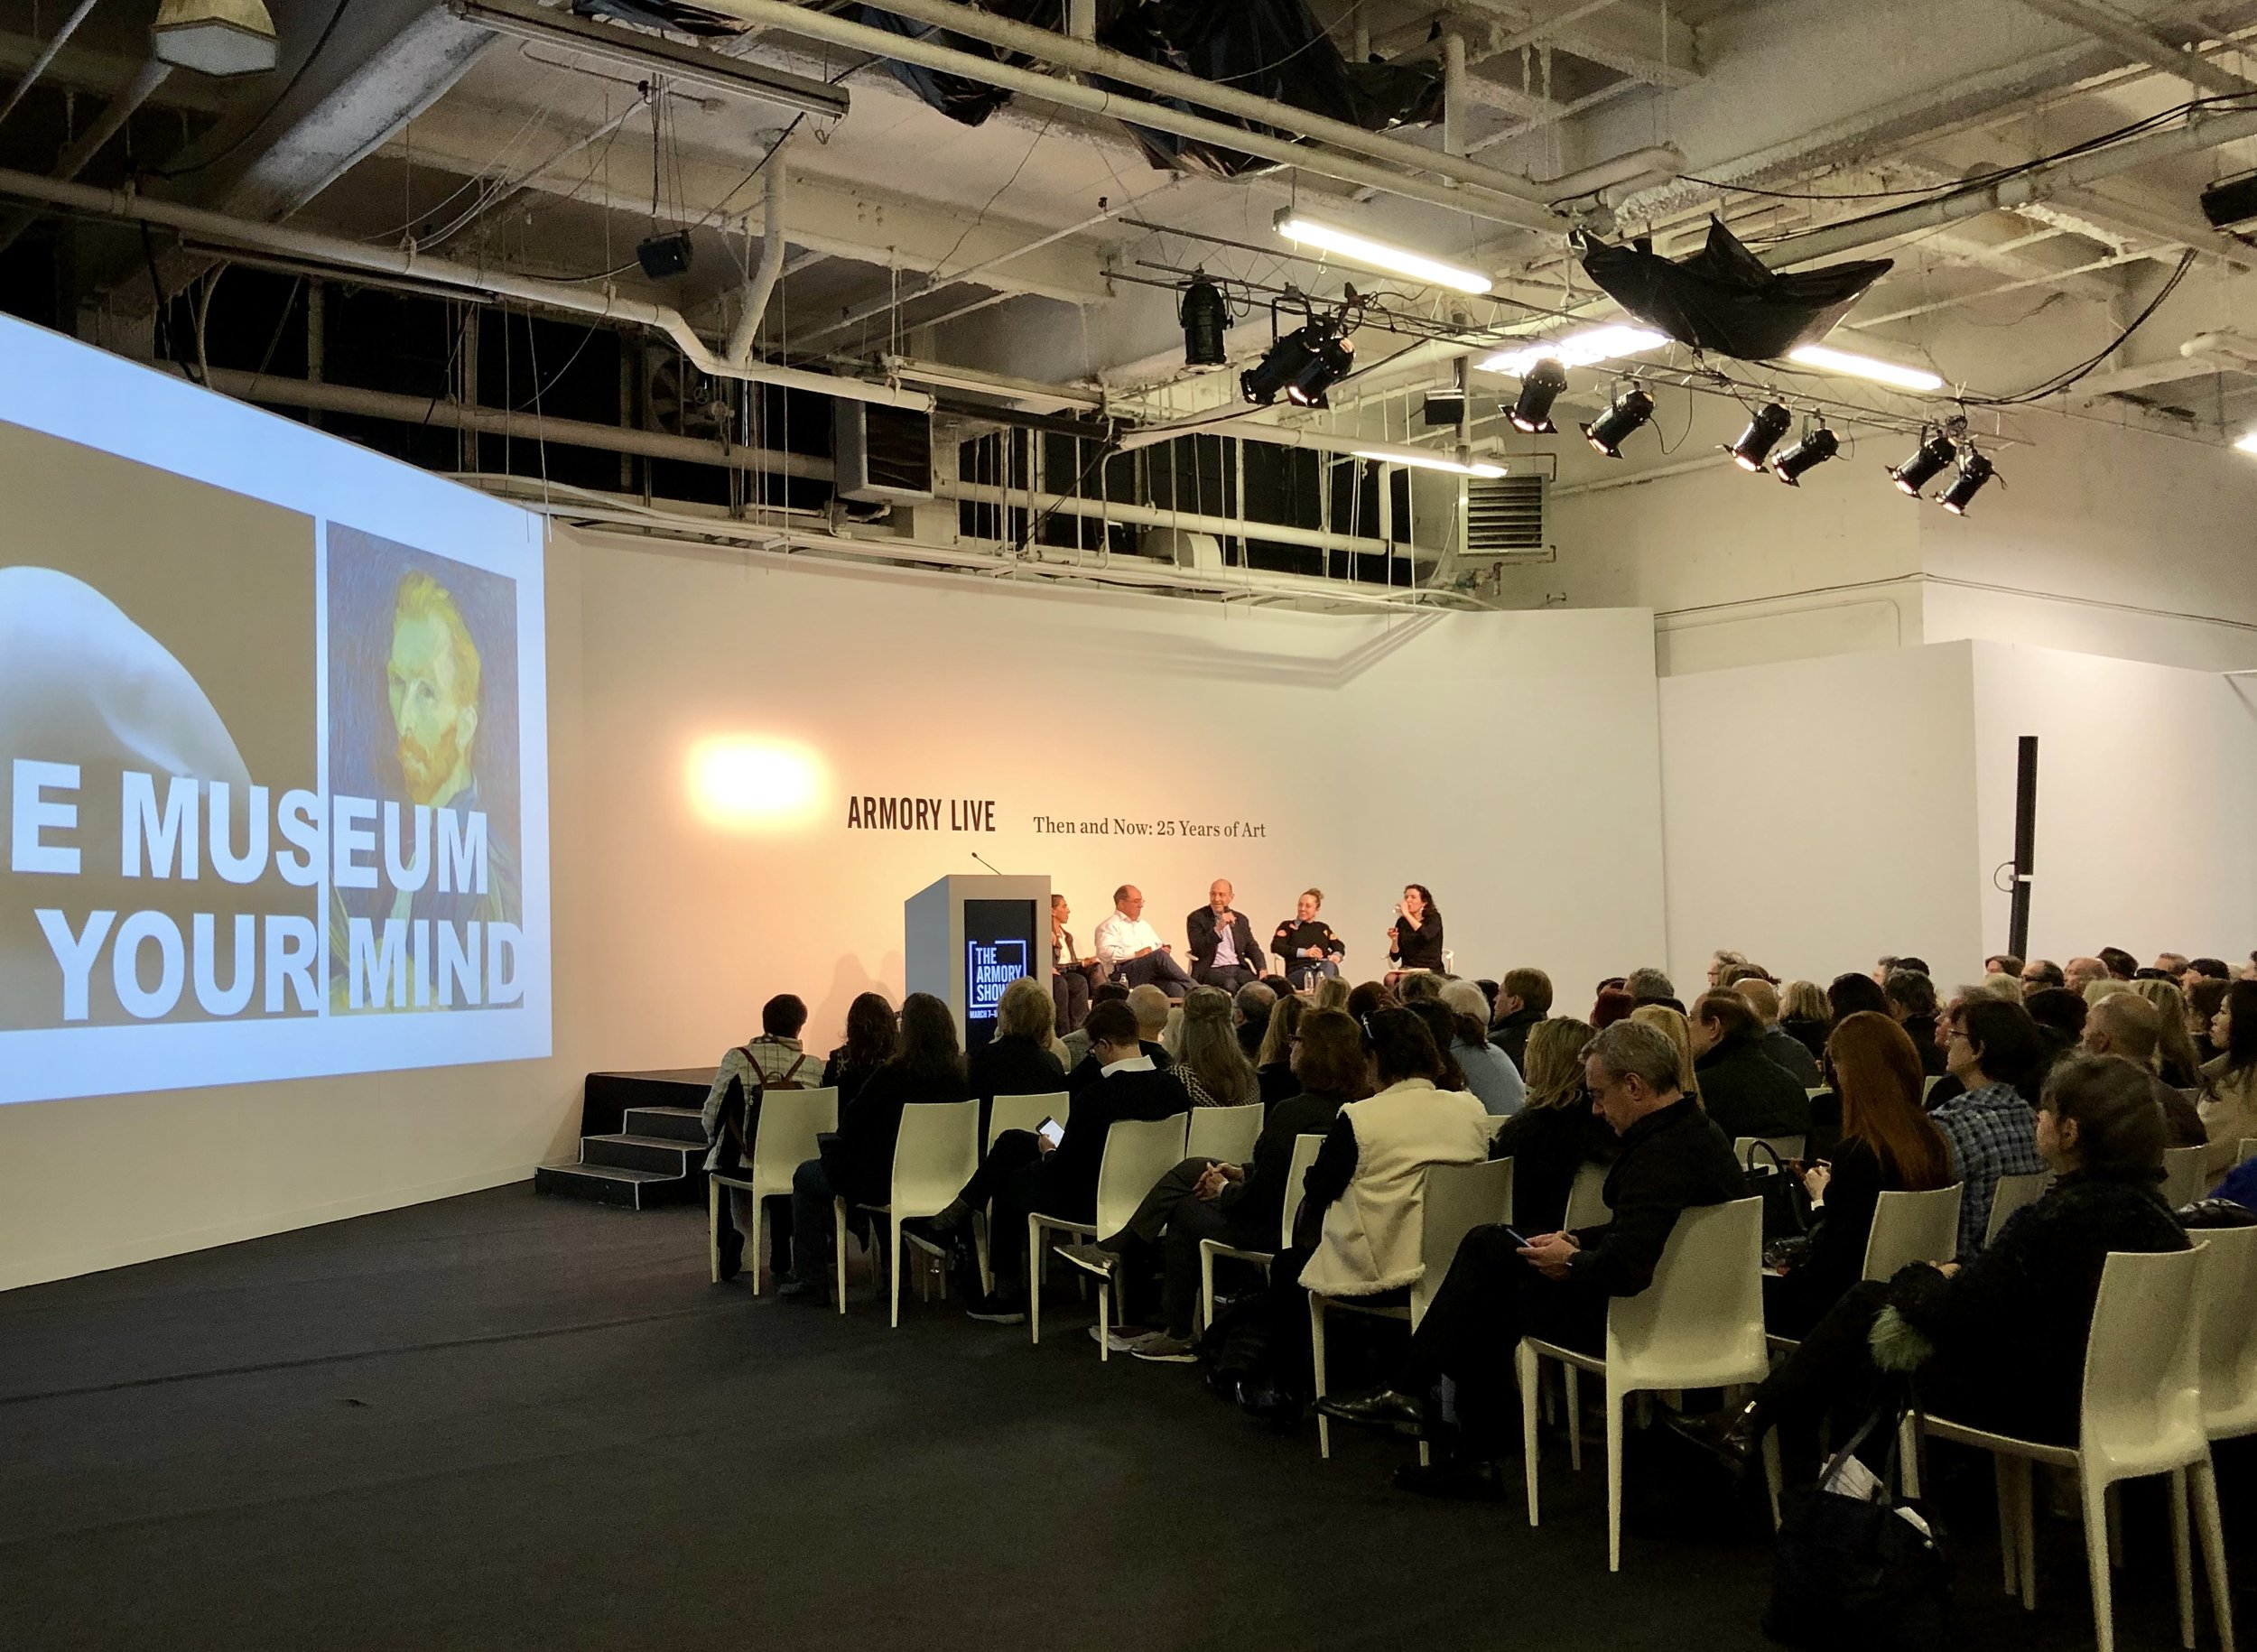 Armory Live: From Investment to Connoisseurship - Debating Major Shifts in Collecting Talk photograph by Amie Potsic